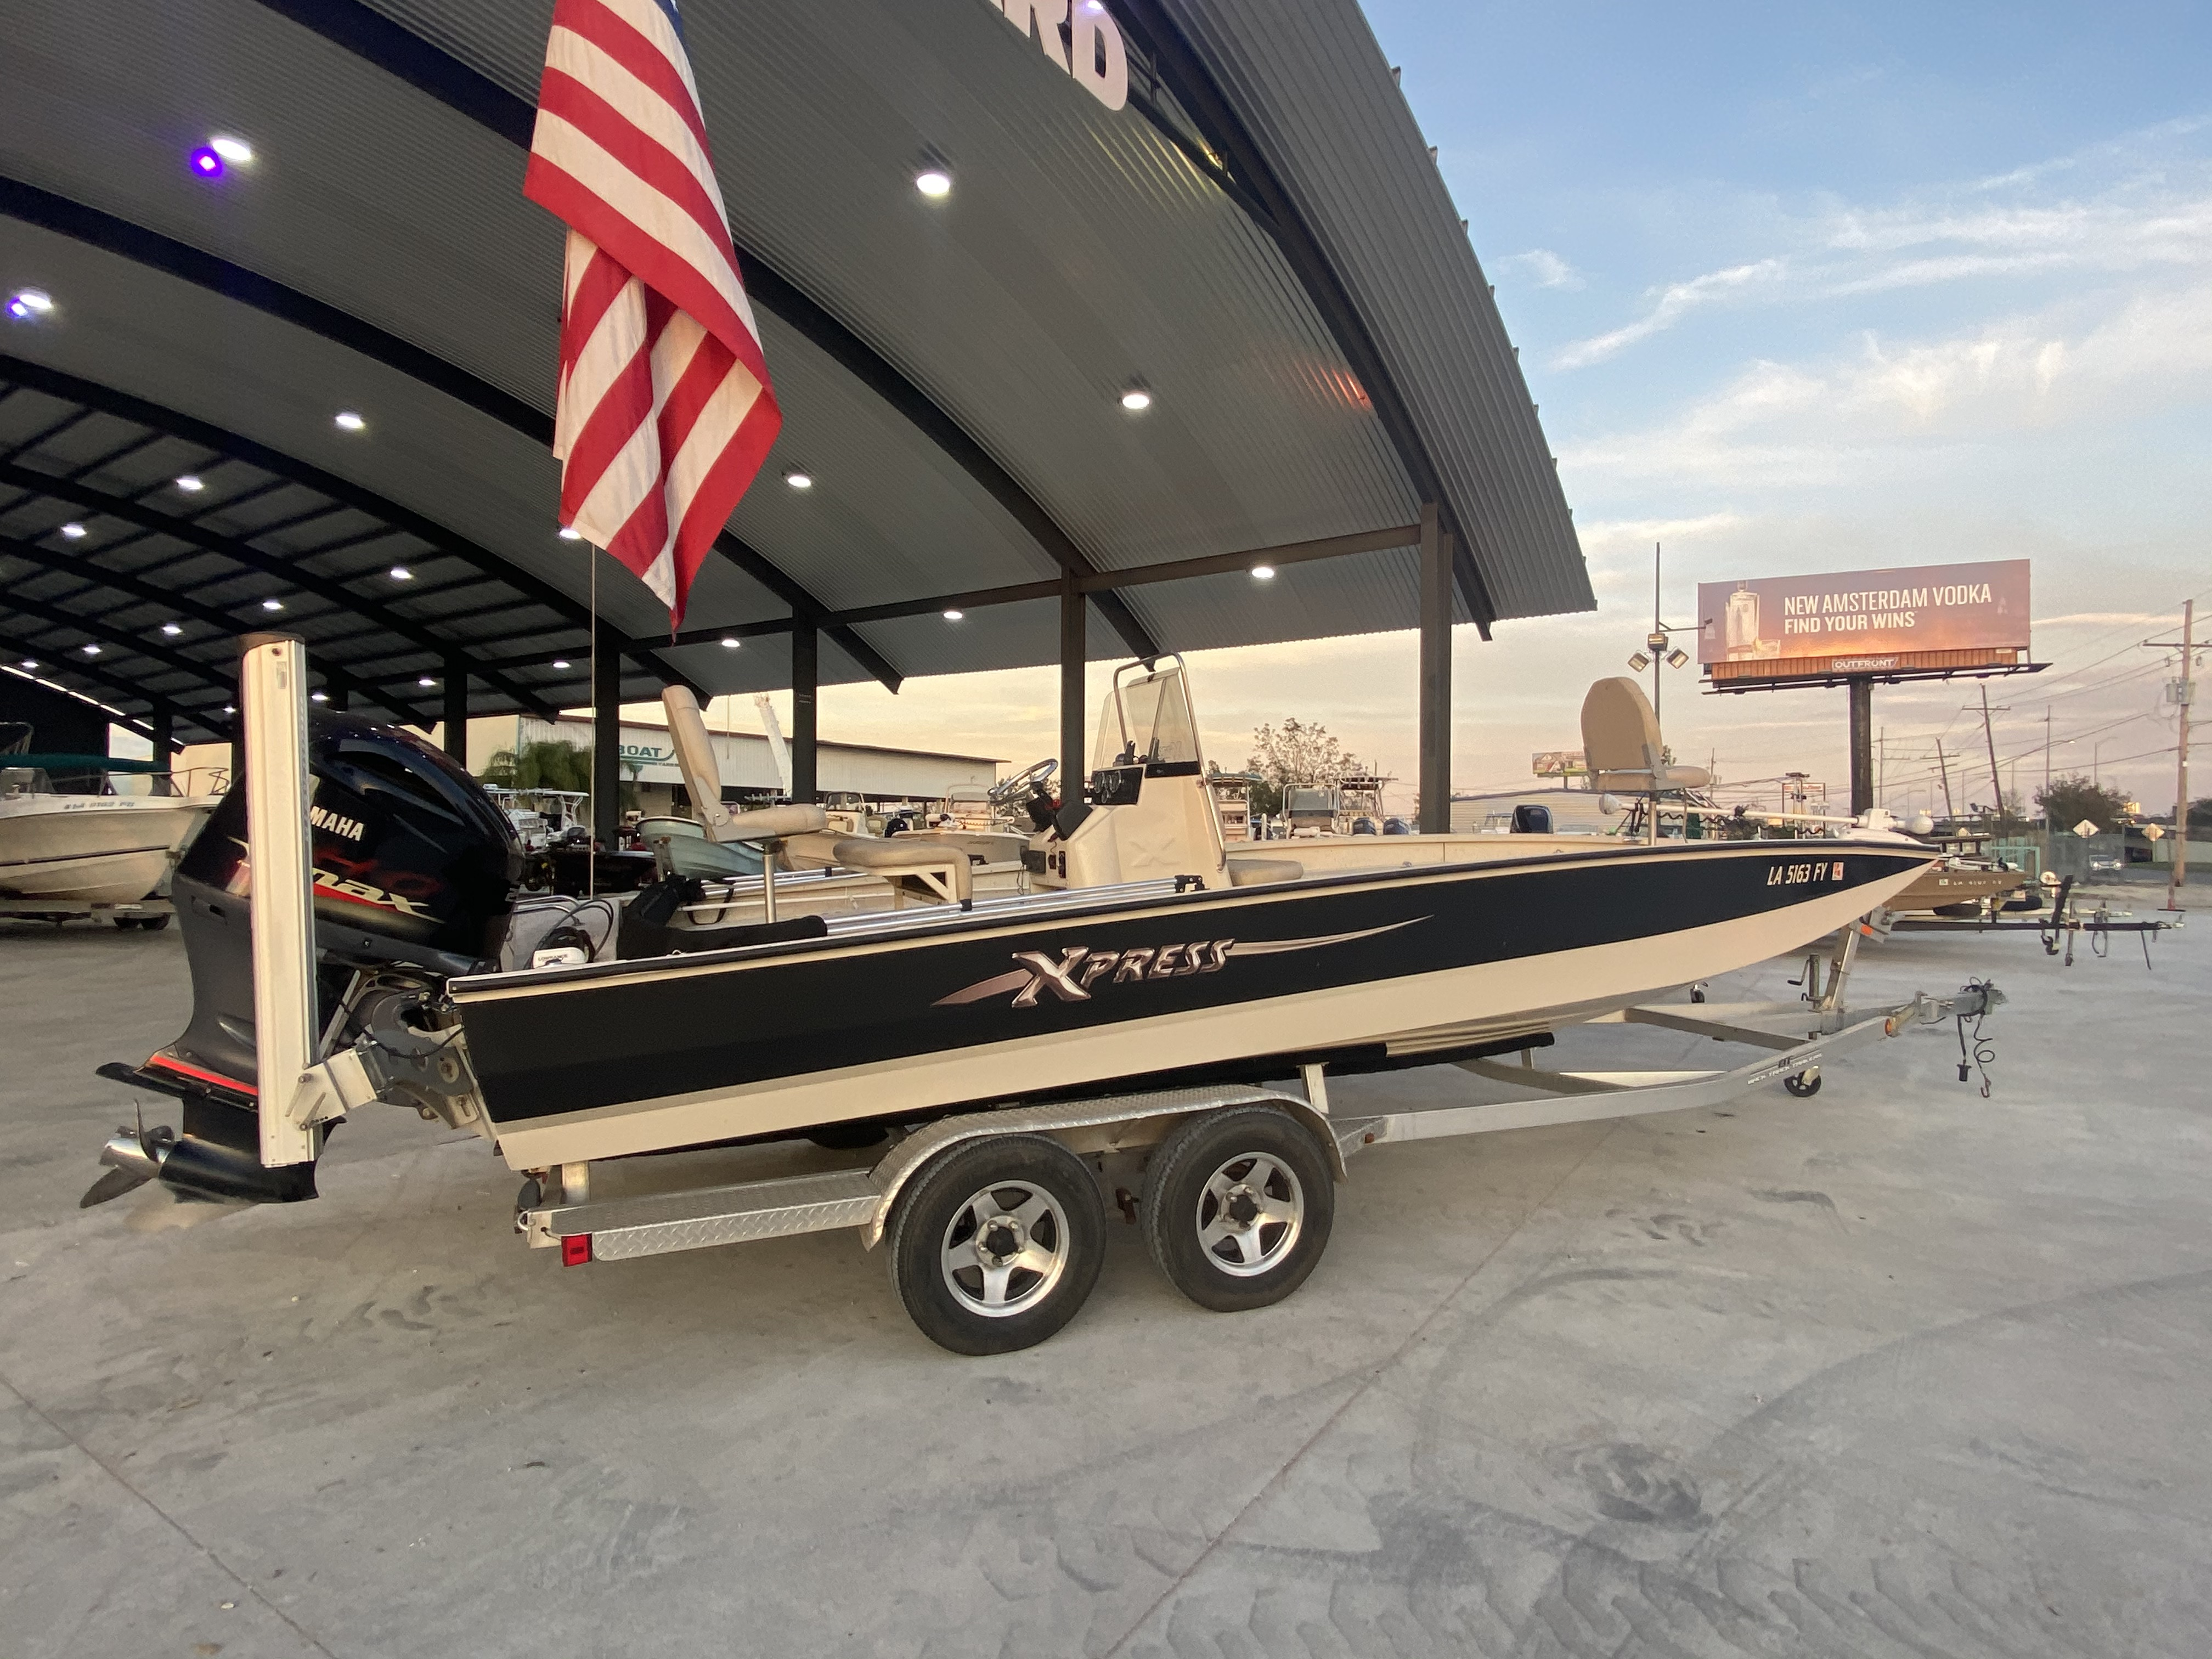 2012 Xpress boat for sale, model of the boat is H24B & Image # 10 of 17